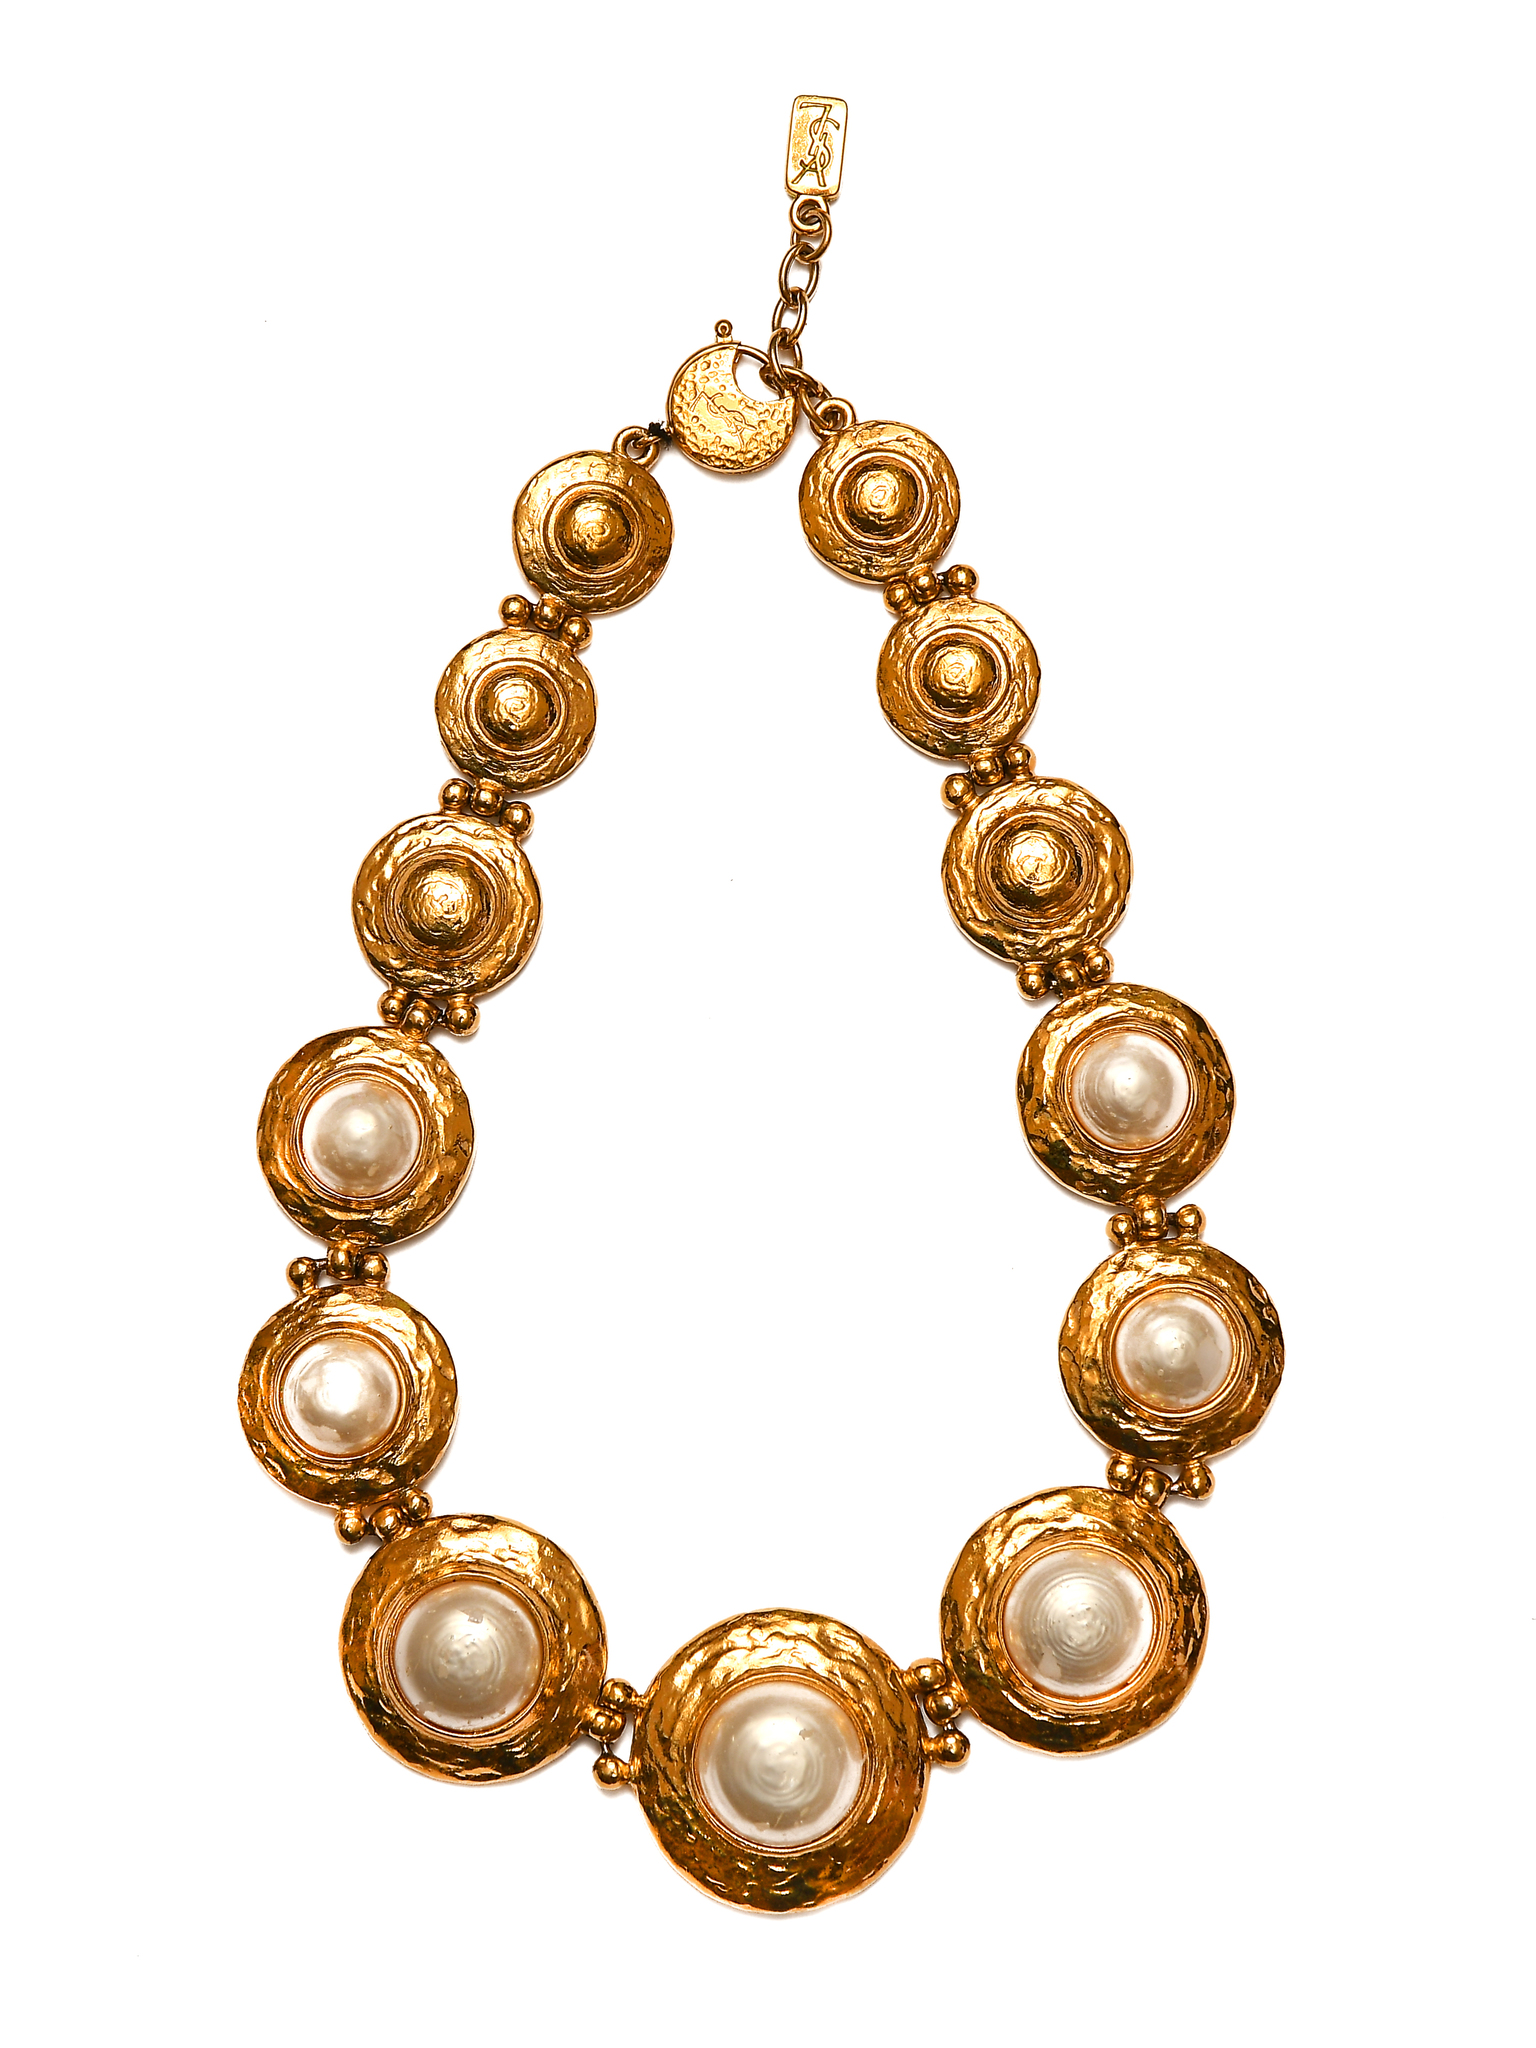 Striking necklace by Yves Saint Laurent